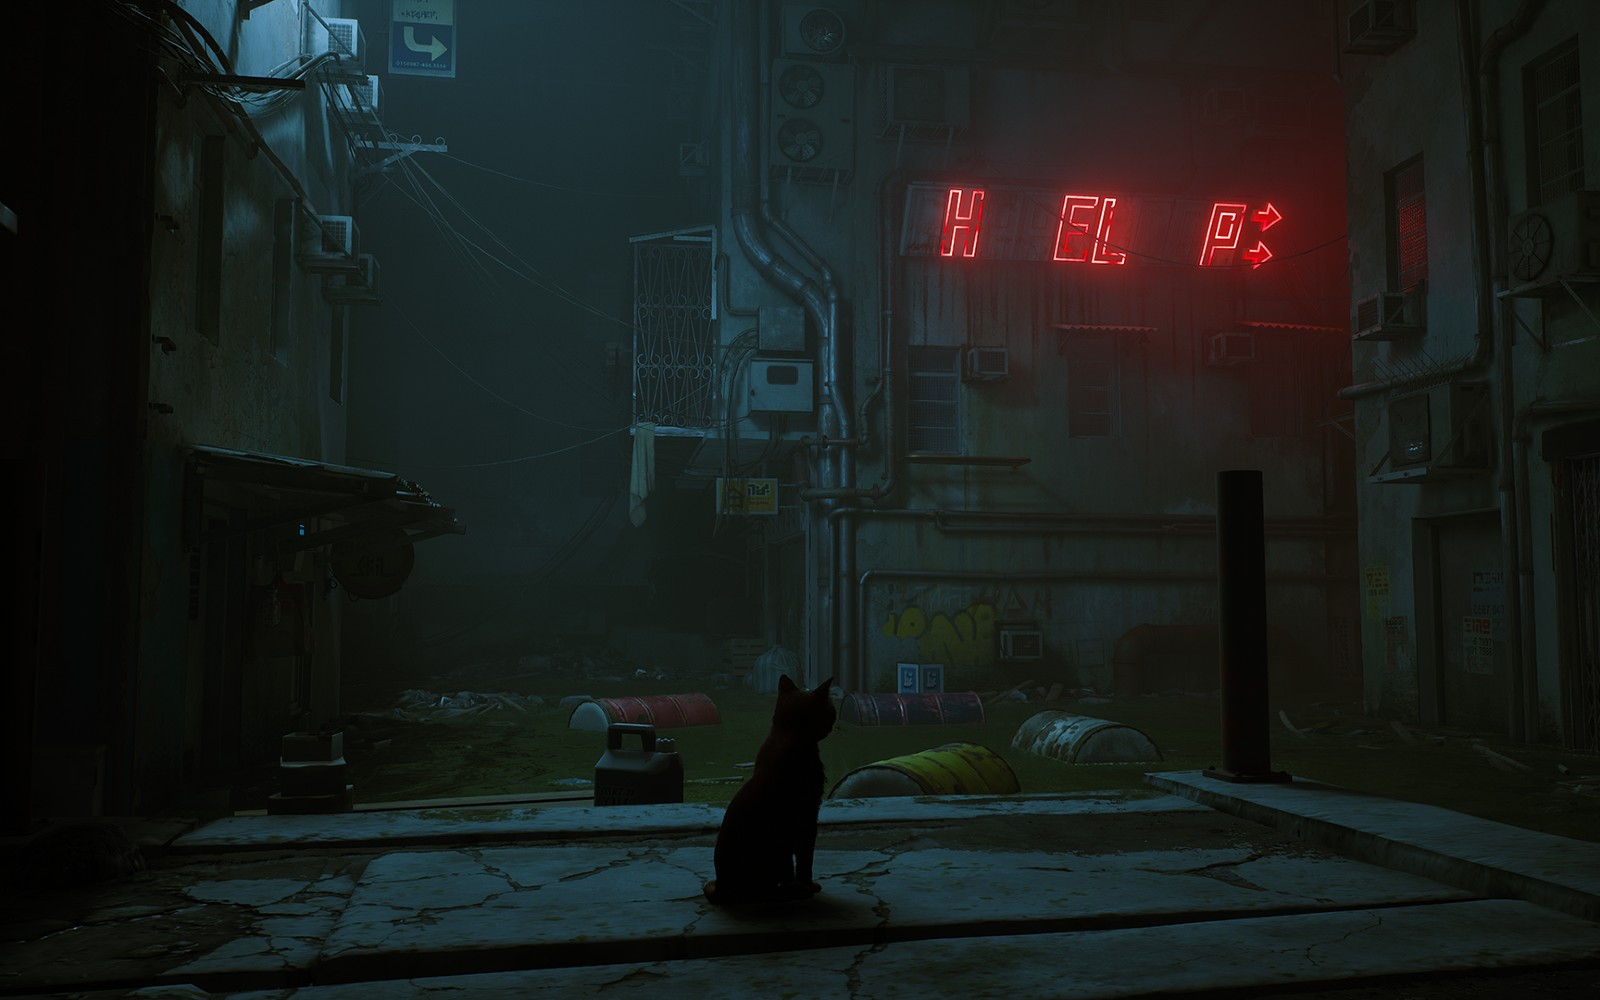 Cat simulator 'Stray' heads to PlayStation and PC in early 2022